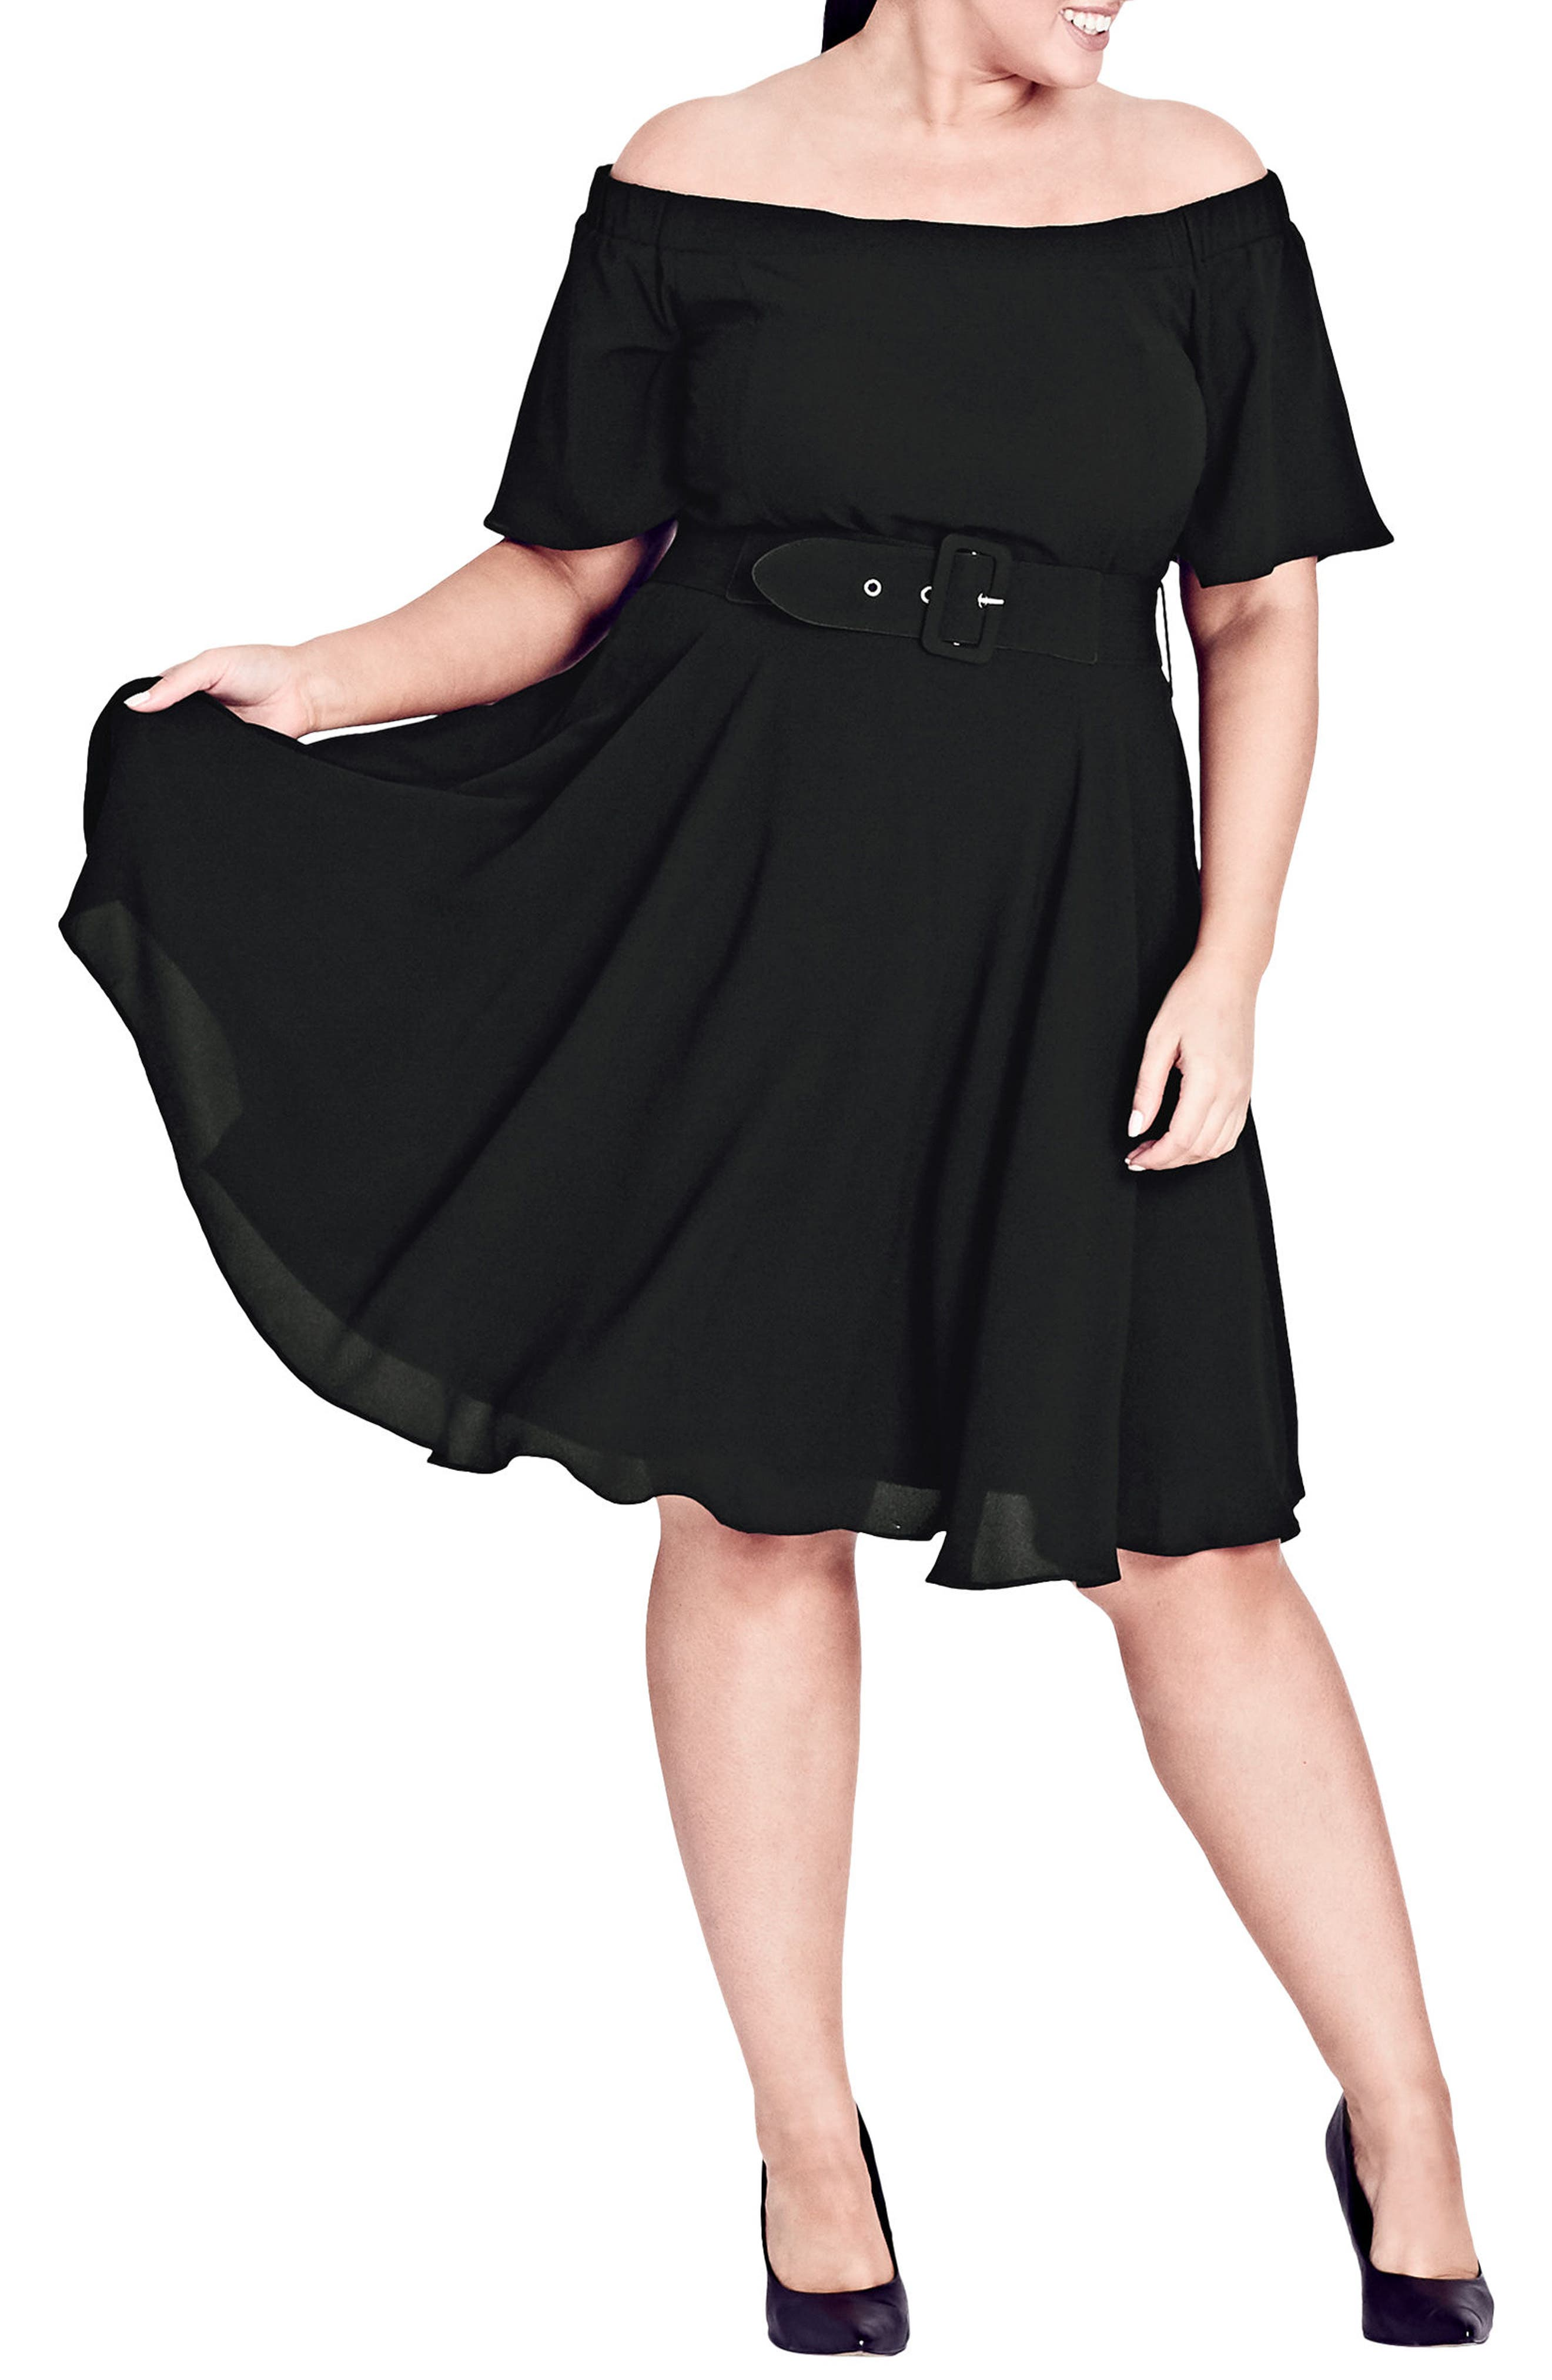 Alternate Image 1 Selected - City Chic Lady Valerie Fit & Flare Dress (Plus Size)